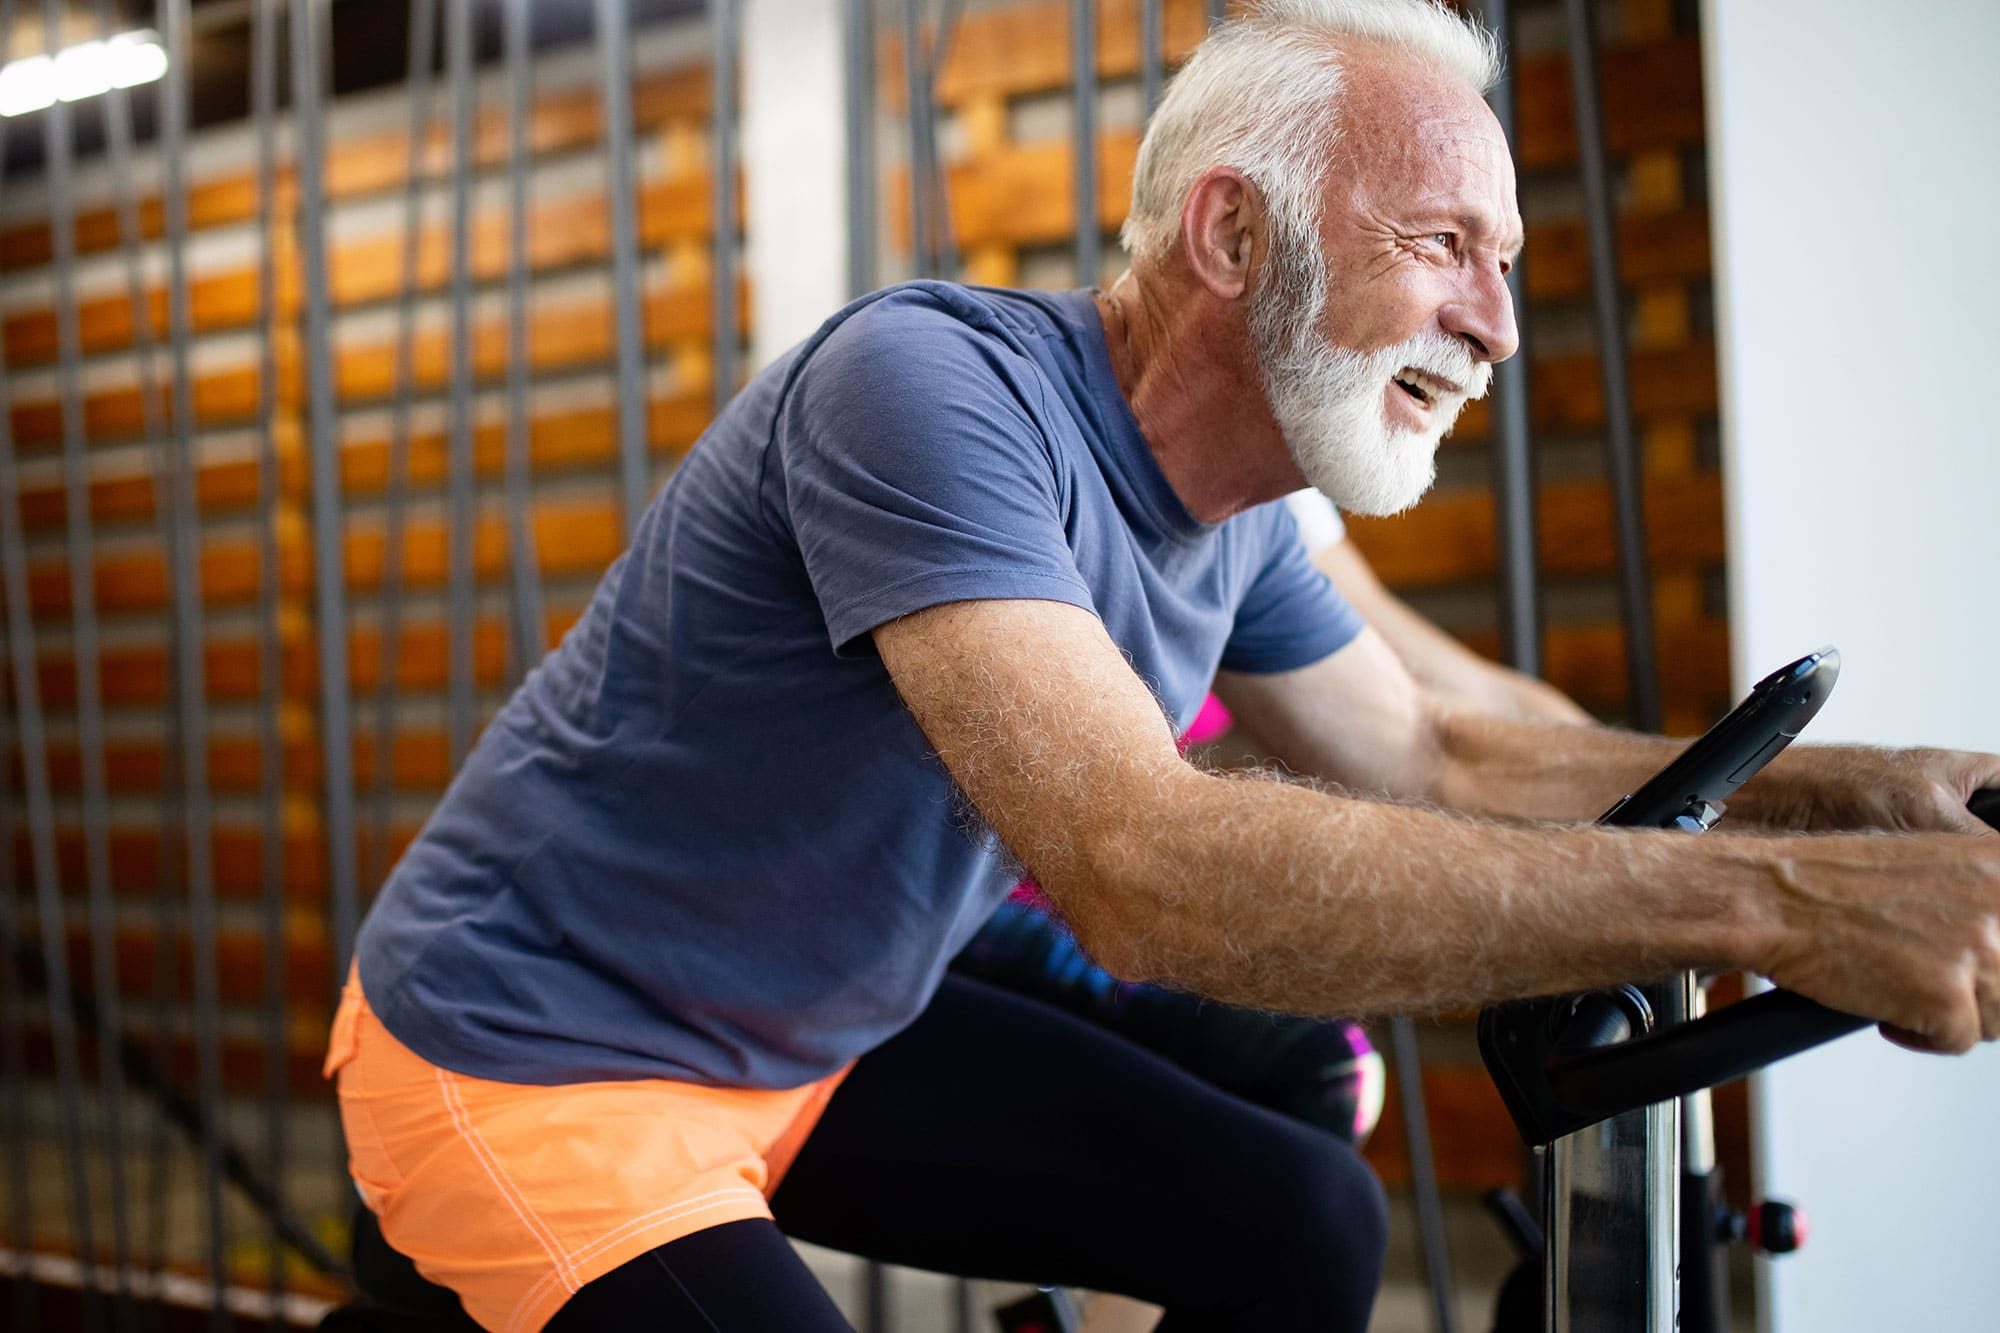 ukactive announces Active Ageing Consultation to improve sector offer for over-55s and people with long-term health conditions